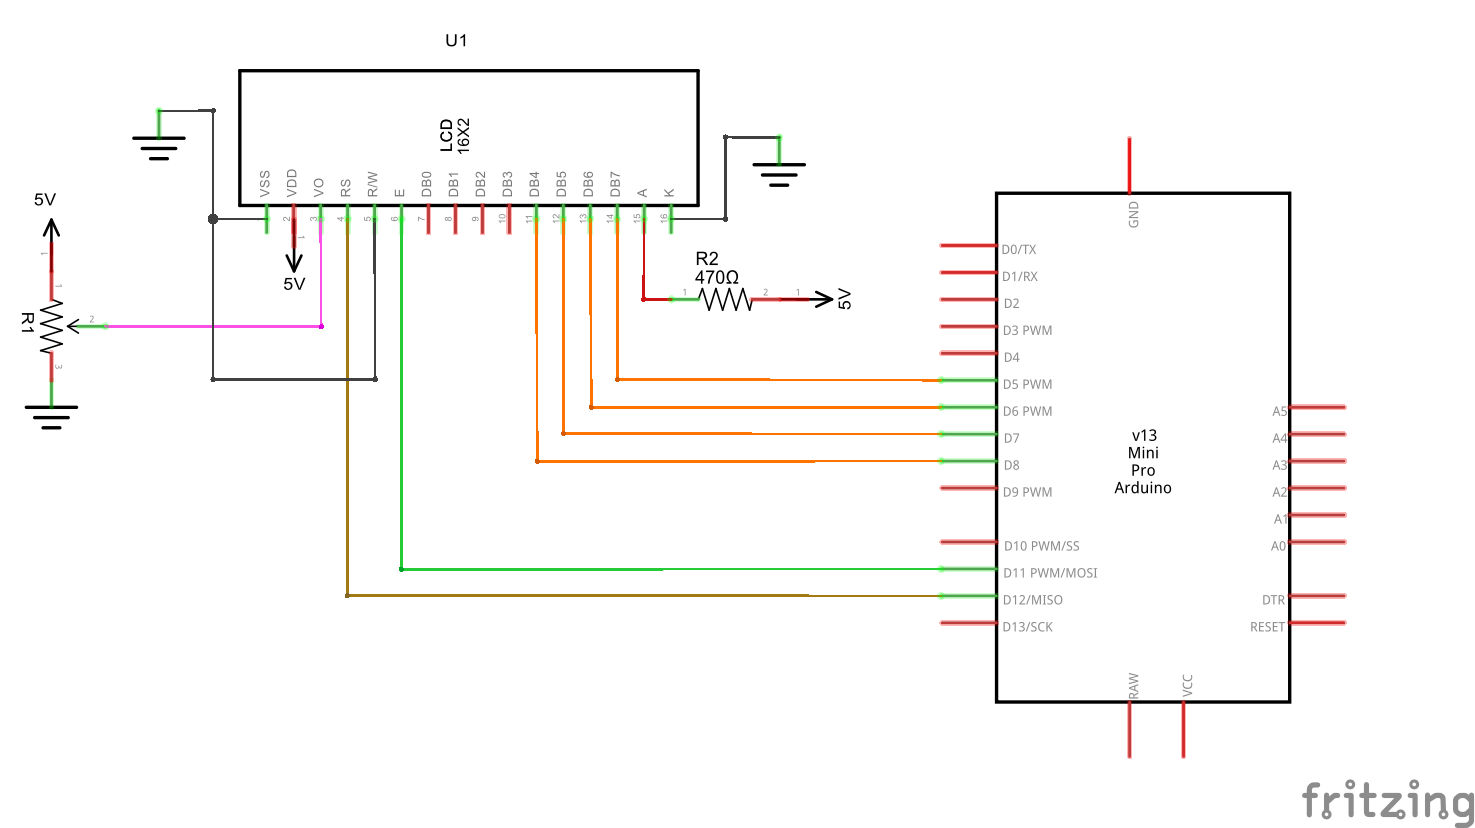 Below is the schematic. LCD 16x2